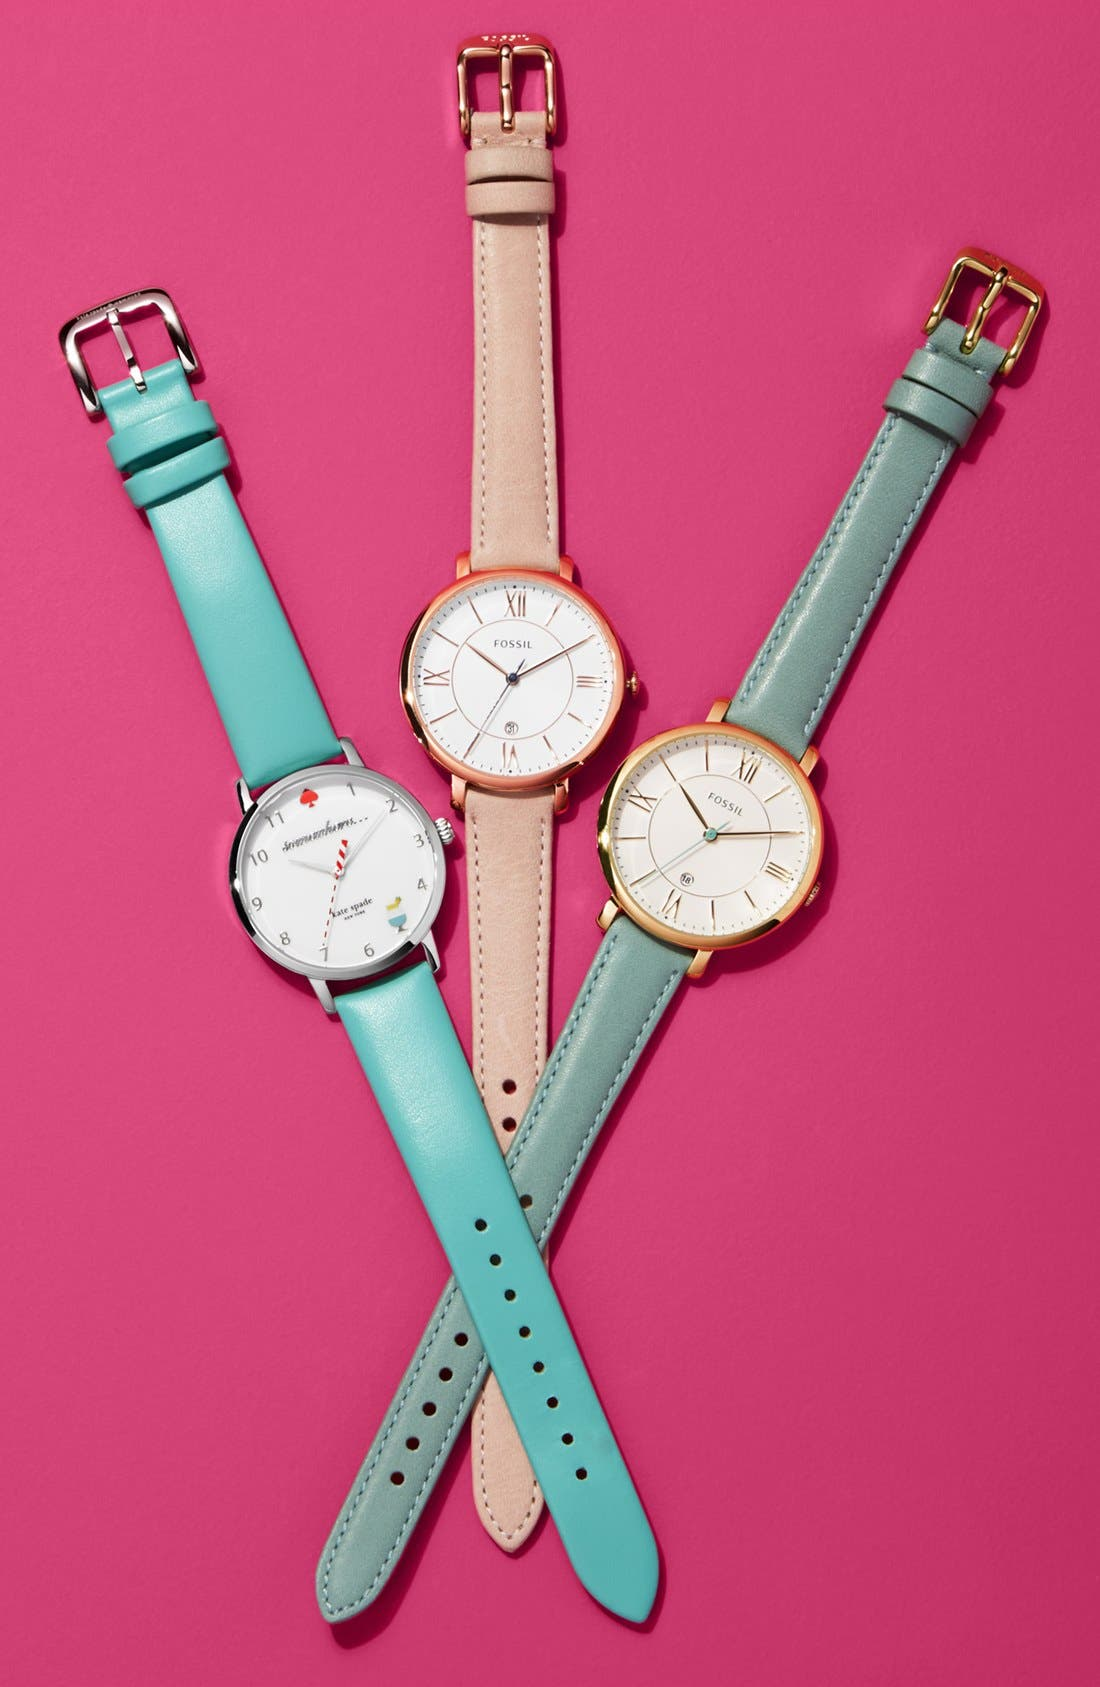 FOSSIL, 'Jacqueline' Leather Strap Watch, 36mm, Alternate thumbnail 4, color, BLUSH/ WHITE